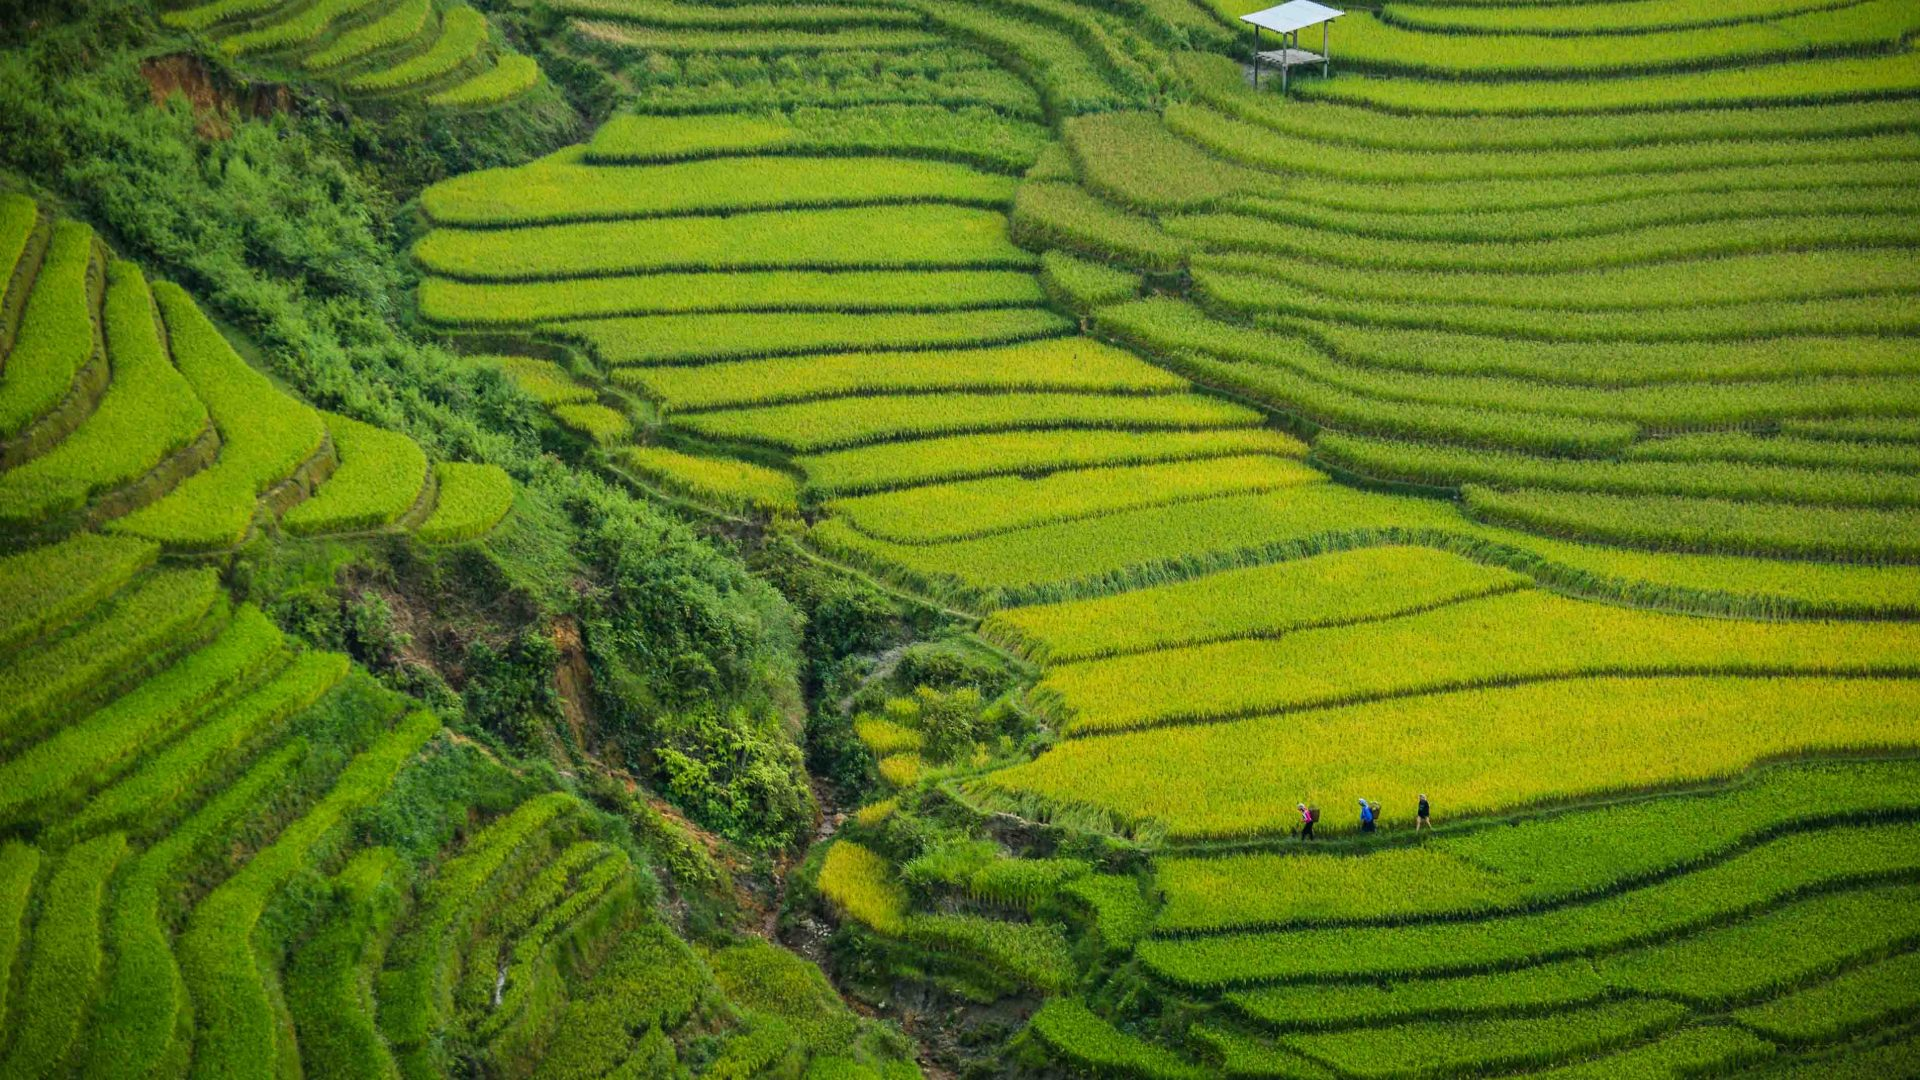 Terraced rice paddies along the Khau Pha Pass, Vietnam.